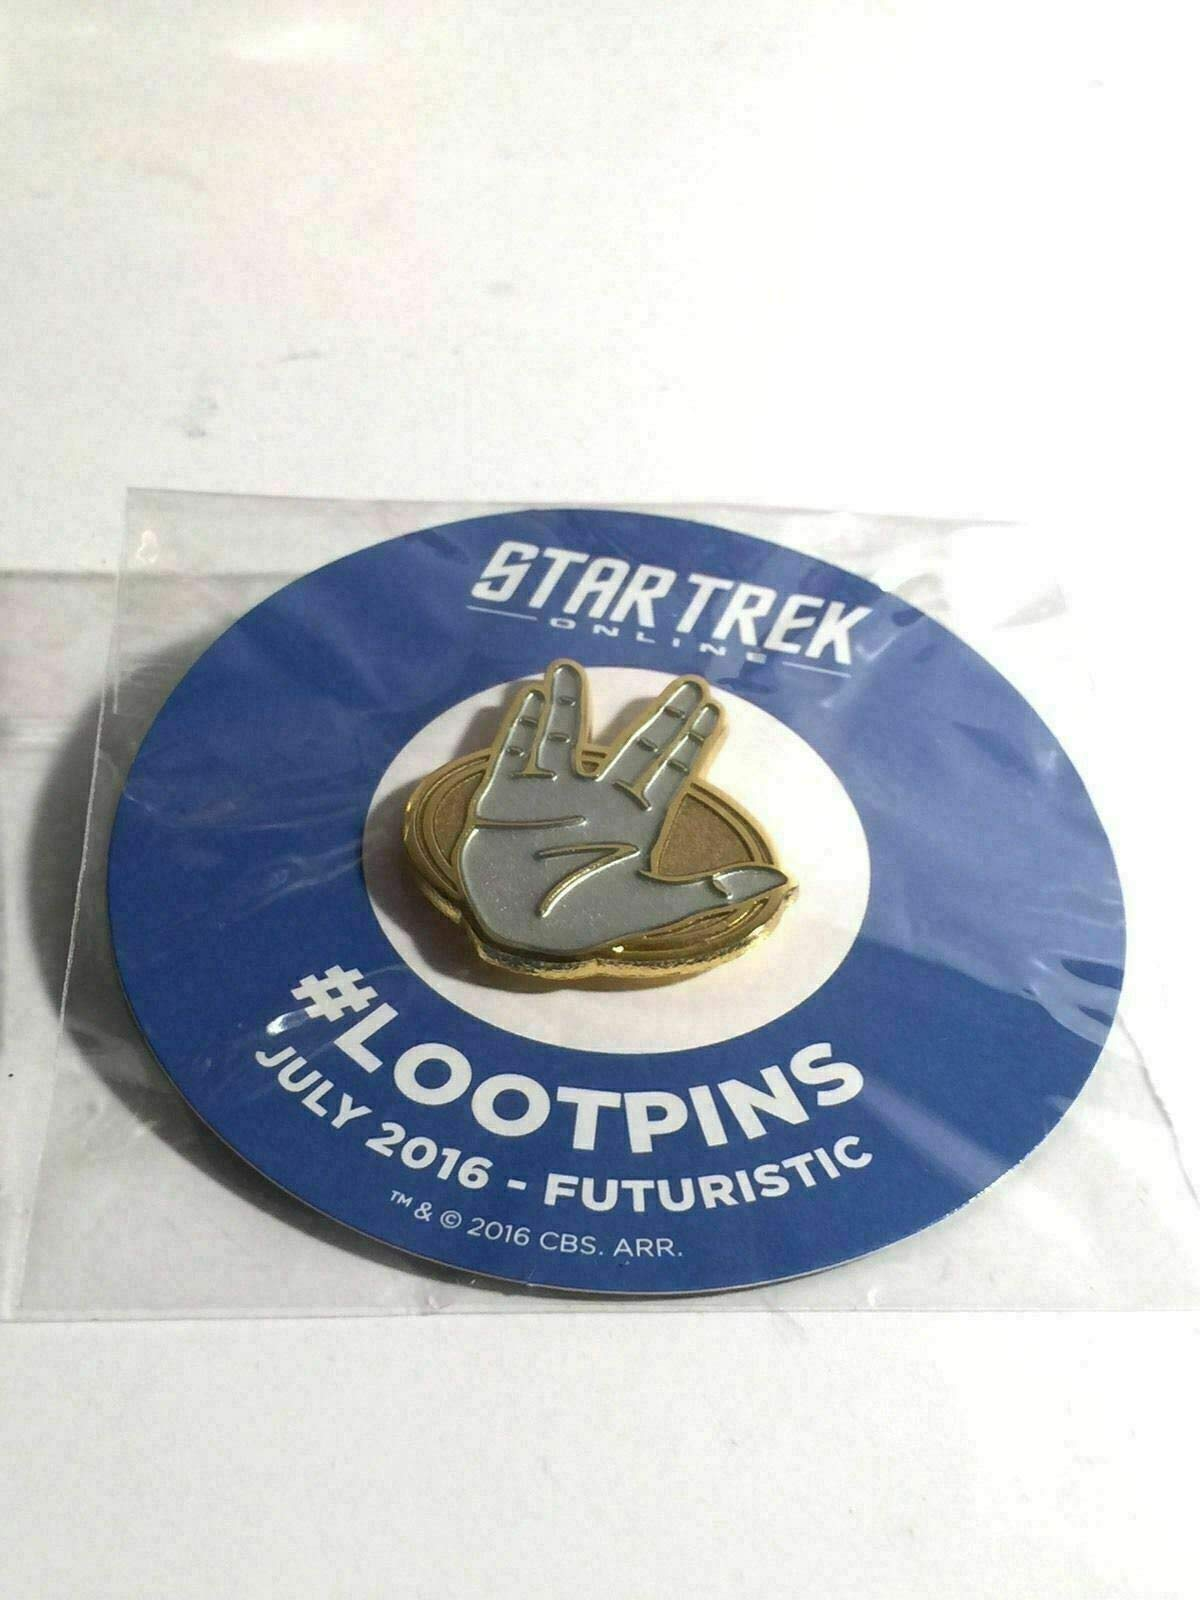 Star Trek Online Loot Crate Spock Lapel Pin Tie Tack Lootcrate Unique by Generic (Image #3)